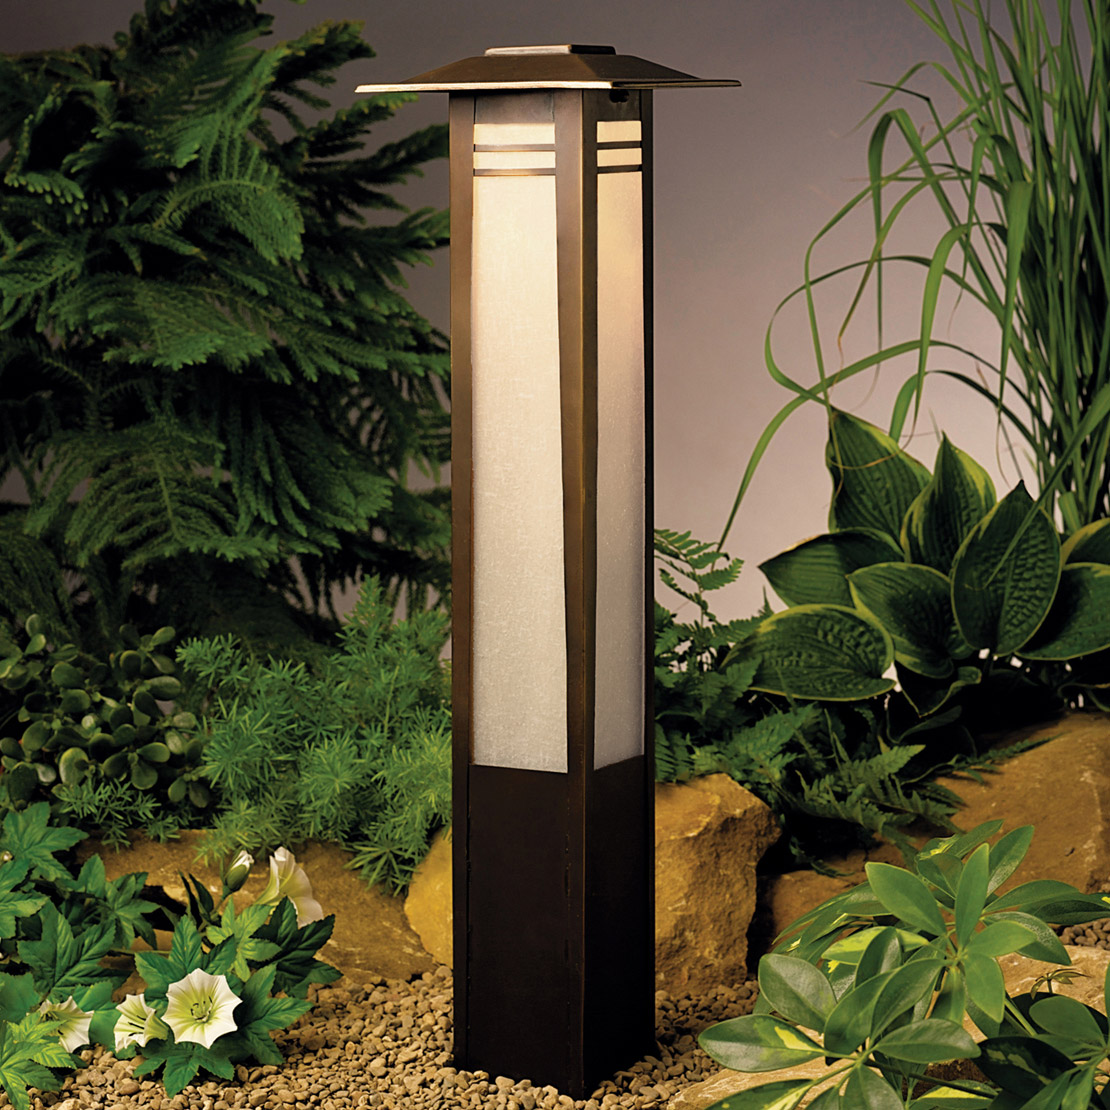 Kichler 15392oz zen garden 12v landscape bollard light for Luminaires exterieur